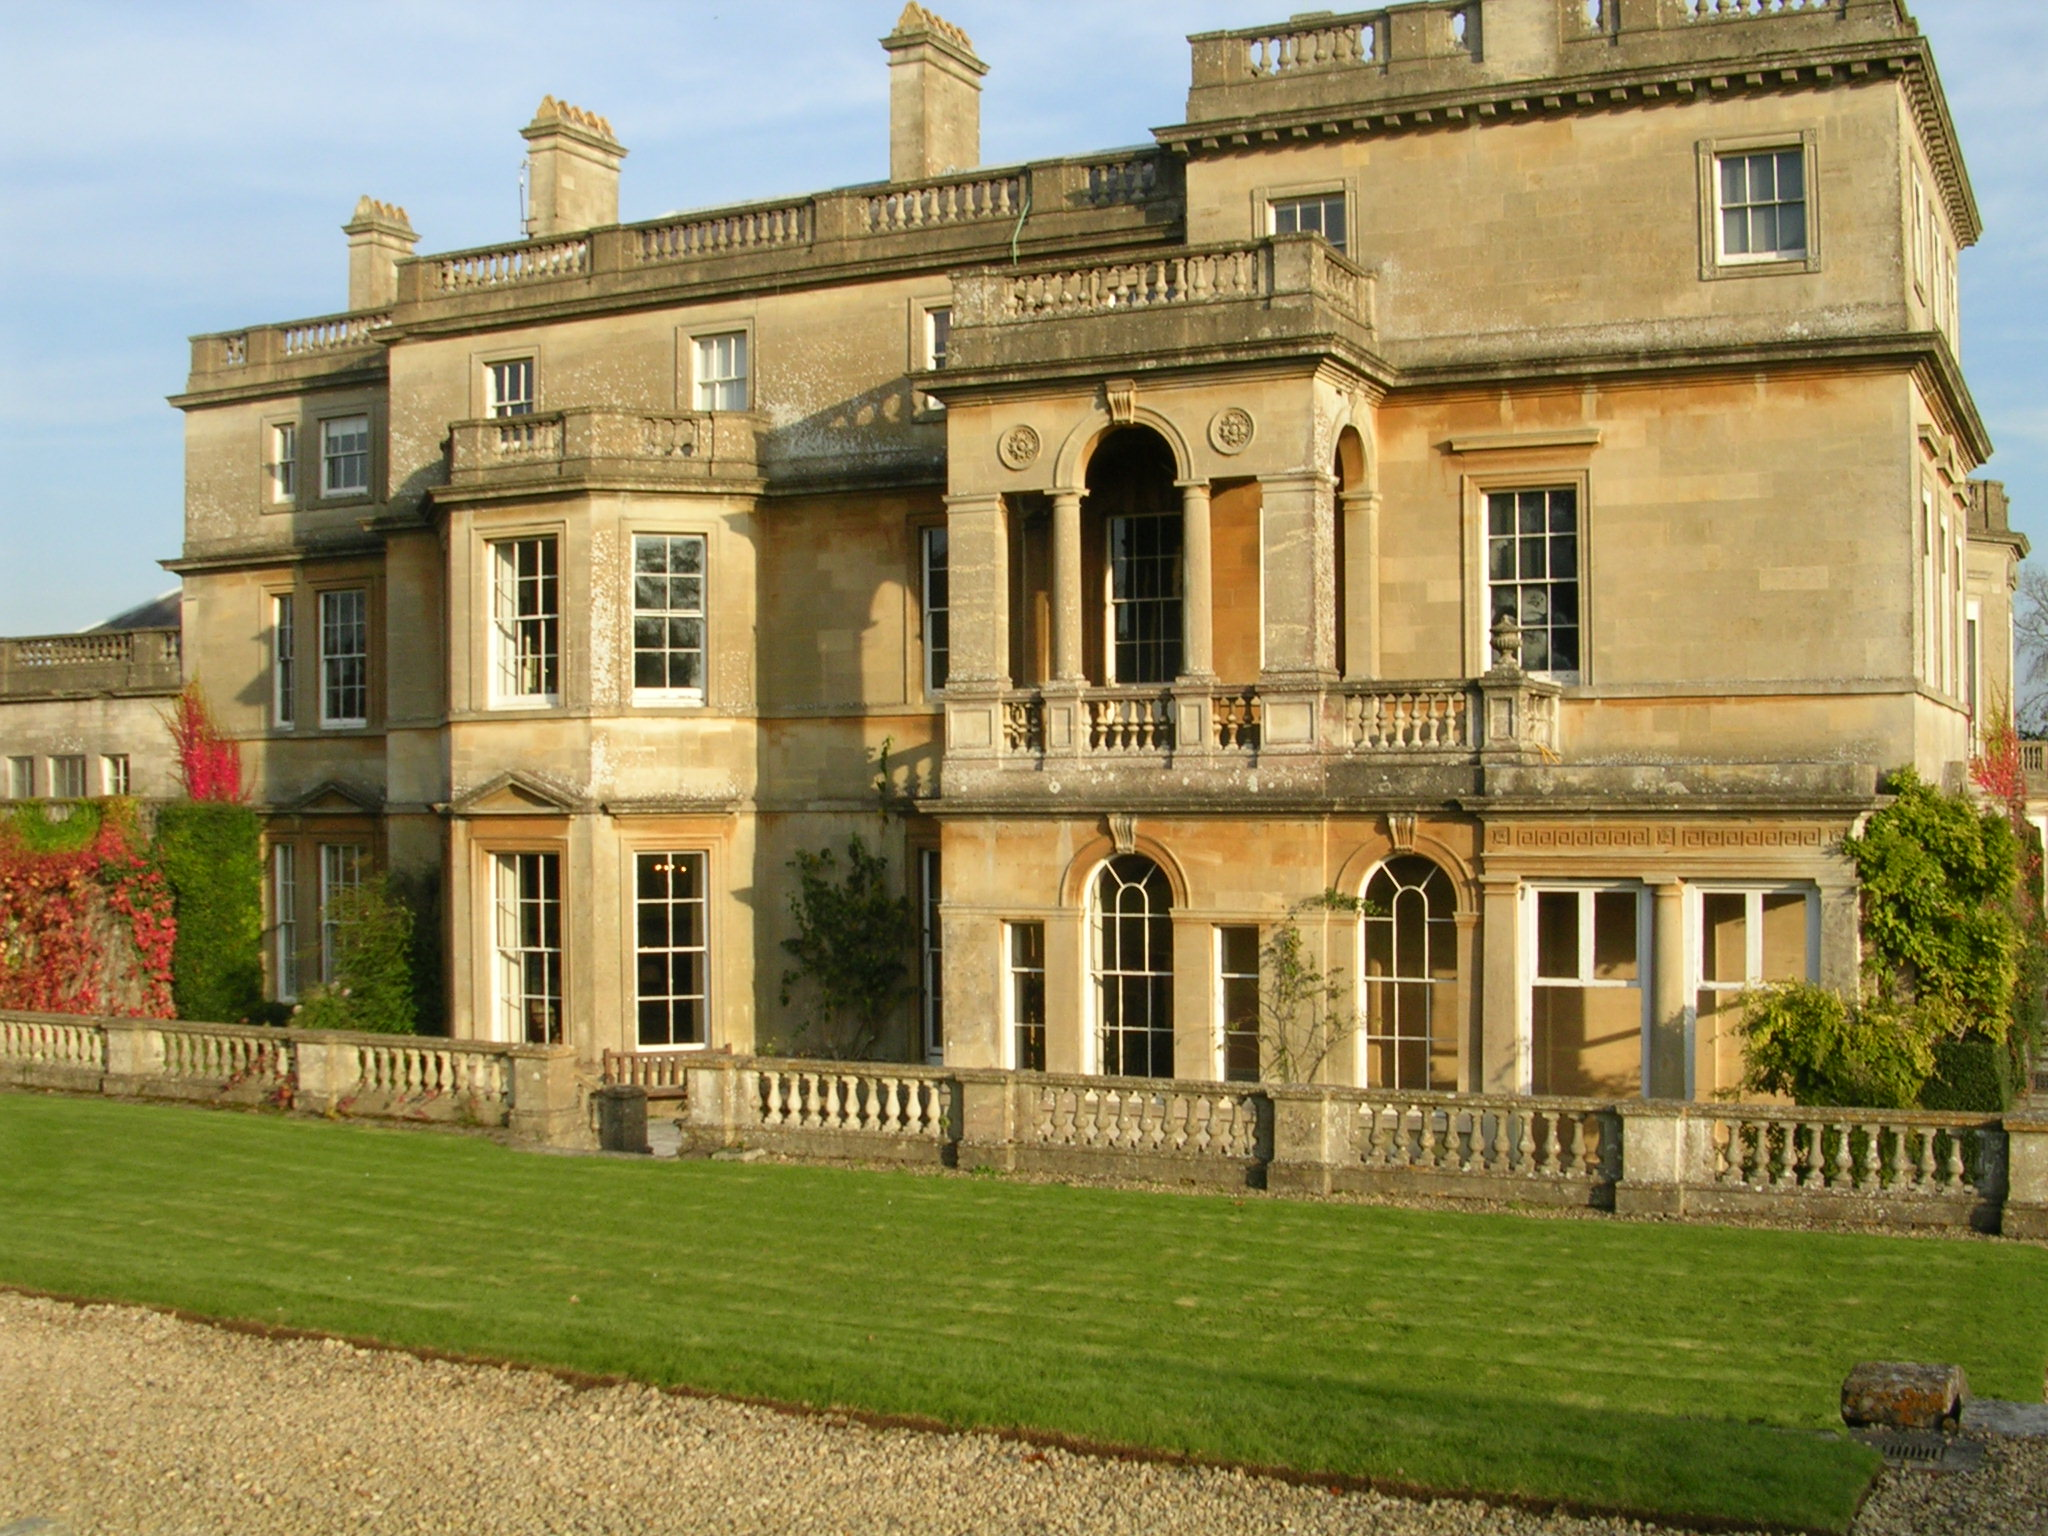 File:18th century mansion built of Bath stone, with